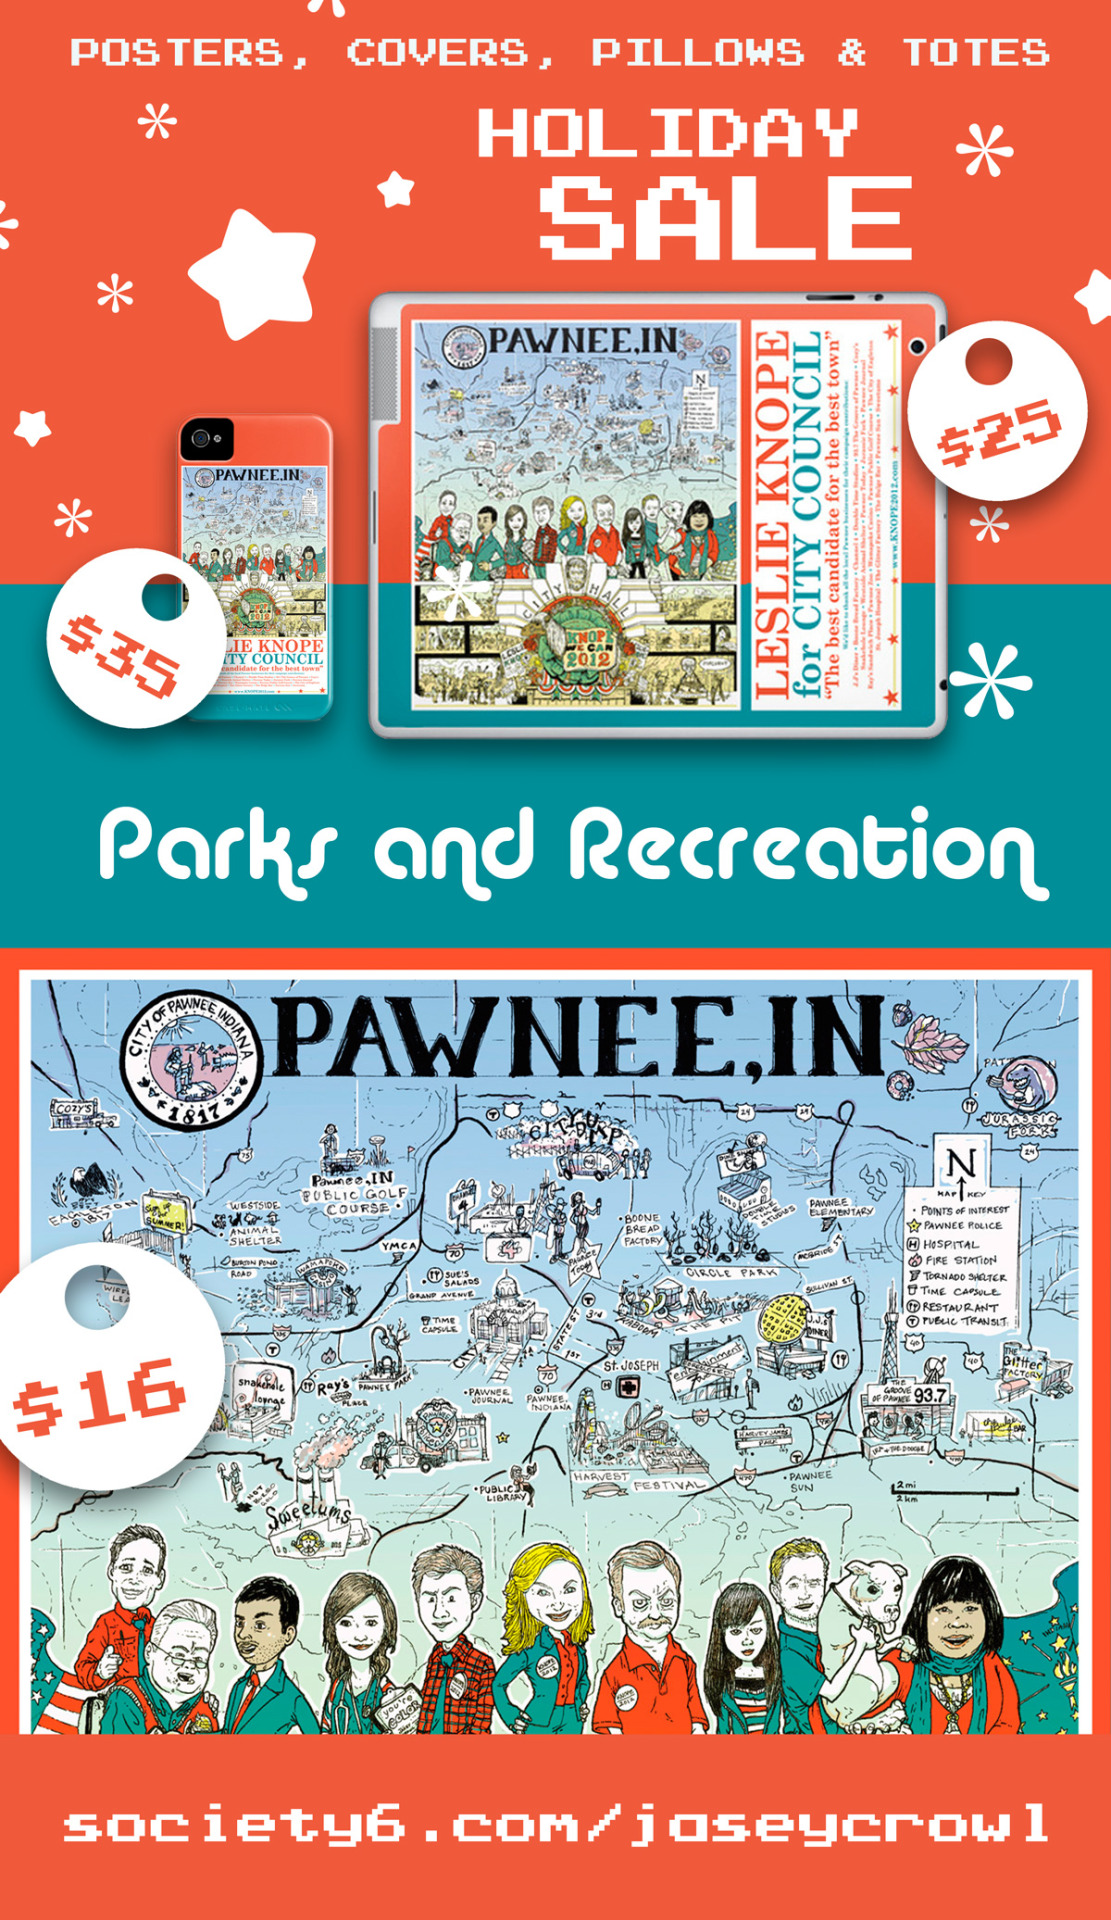 Parks and Recreation Holiday Sale! SPECIAL til 11:59pm 12/09/12: FREE SHIPPING Poster - T-shirt - Tote Bag - Pillows - &More  http://bit.ly/leslieknopeforcitycouncil Leslie Knope for City Council Poster - A scavenger hunt for all your favorite local Pawnee, IN businesses, people, and history!